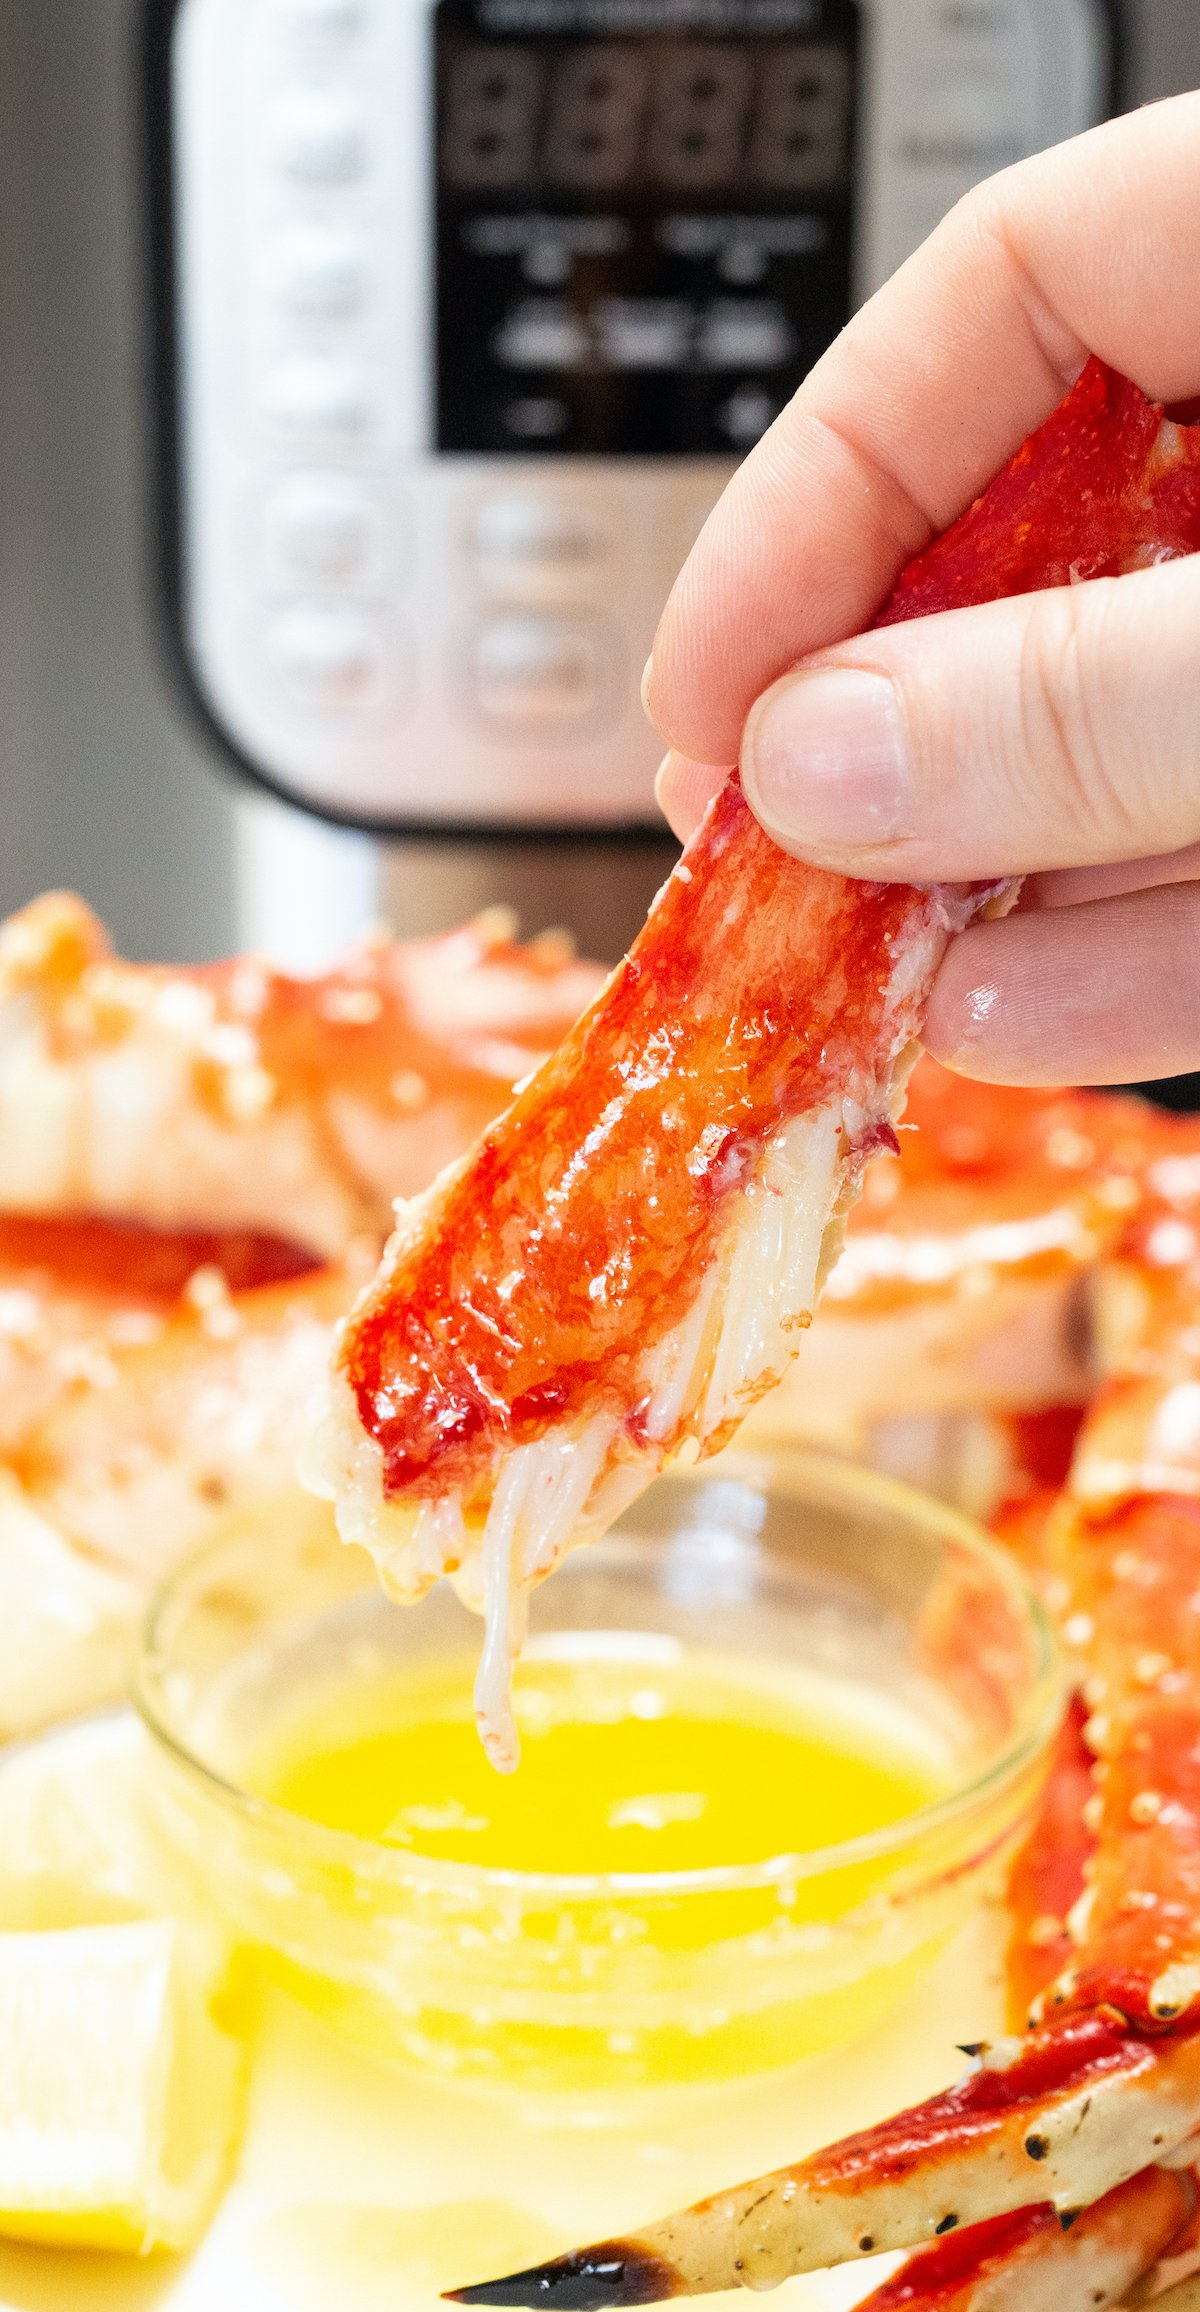 Crab leg meat is being dipped in a bowl of butter that is sitting in front of an Instant Pot